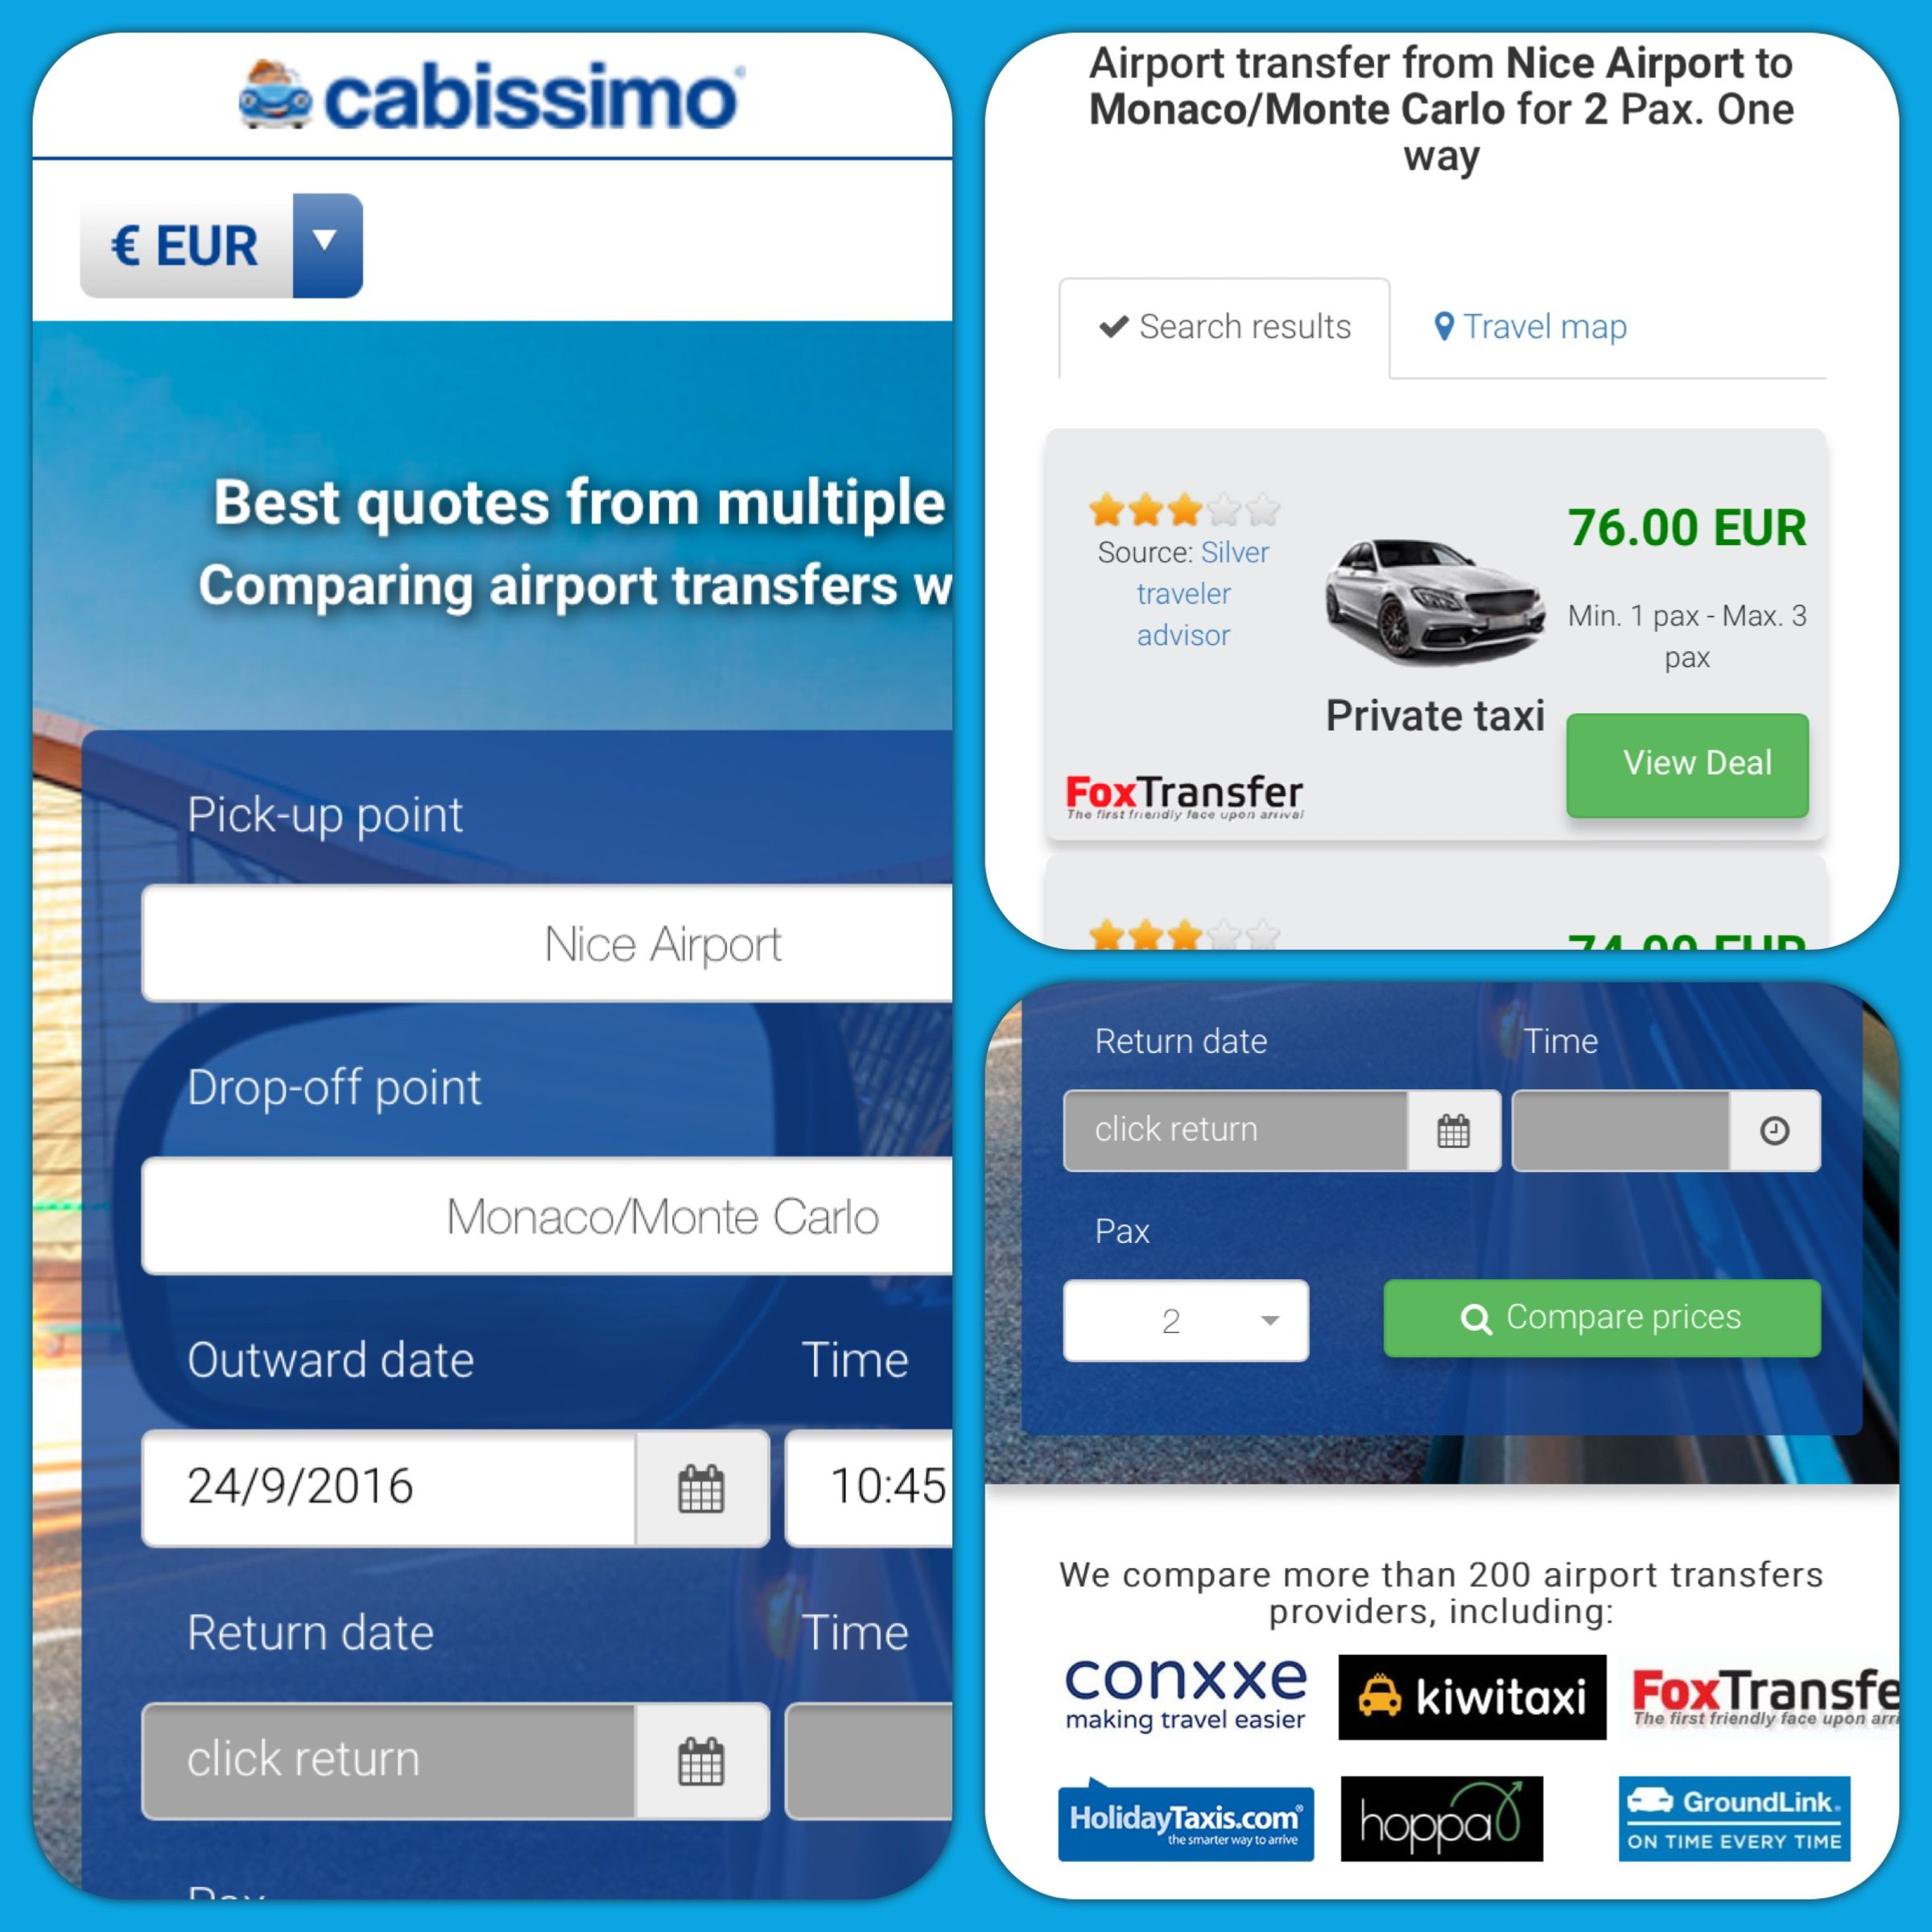 Big changes and new features in #cabissimo! New page design, new search engine with real time results...and now you can show prices in EUR, USD and GBP Take a look at our website: https://www.cabissimo.com